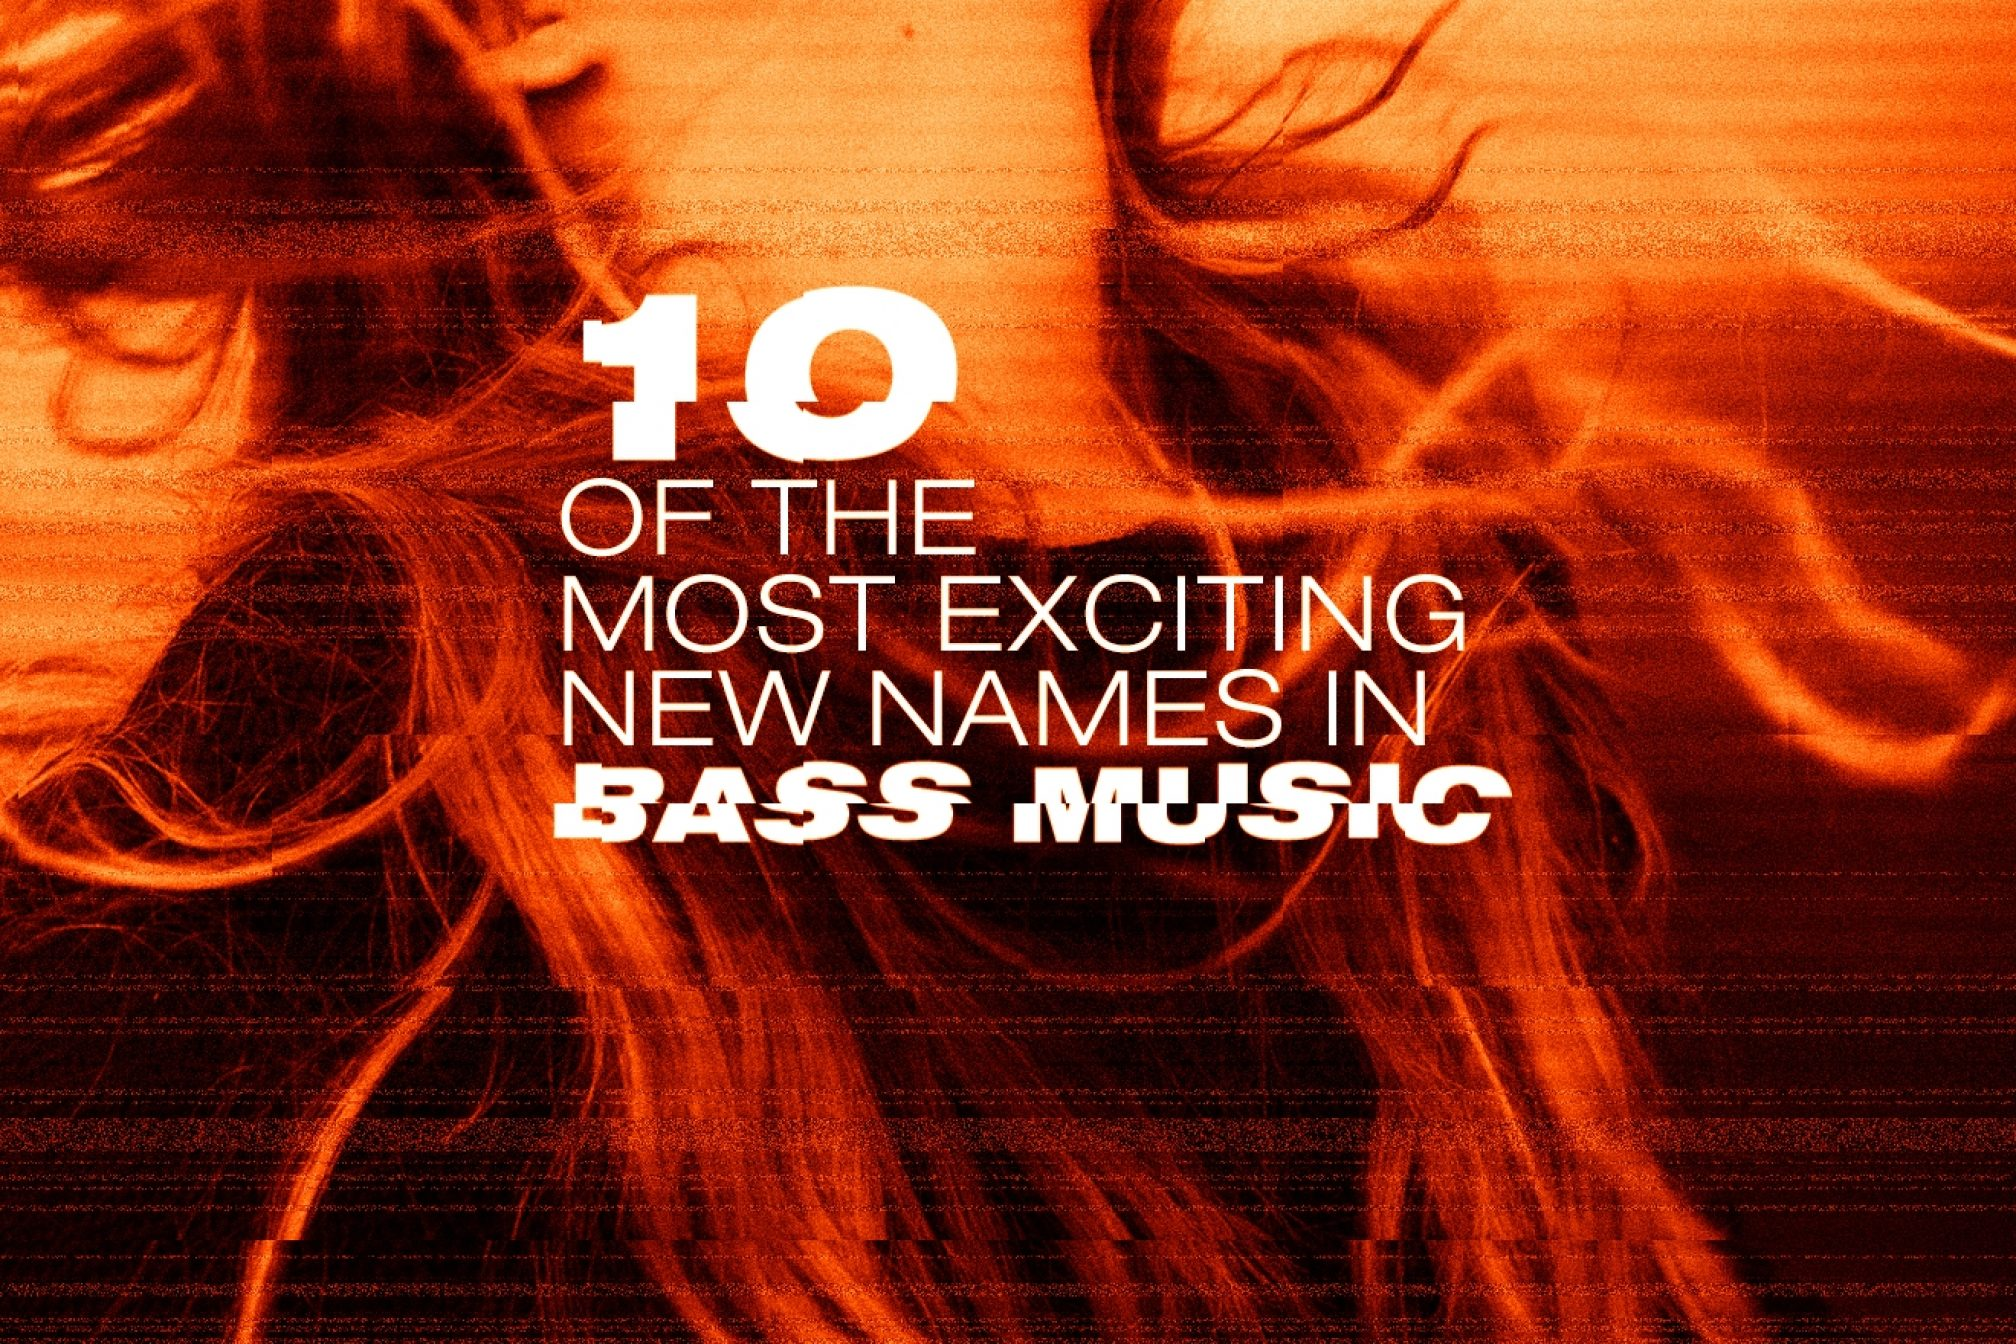 10 of the most exciting new names in bass music - Lists - Mixmag